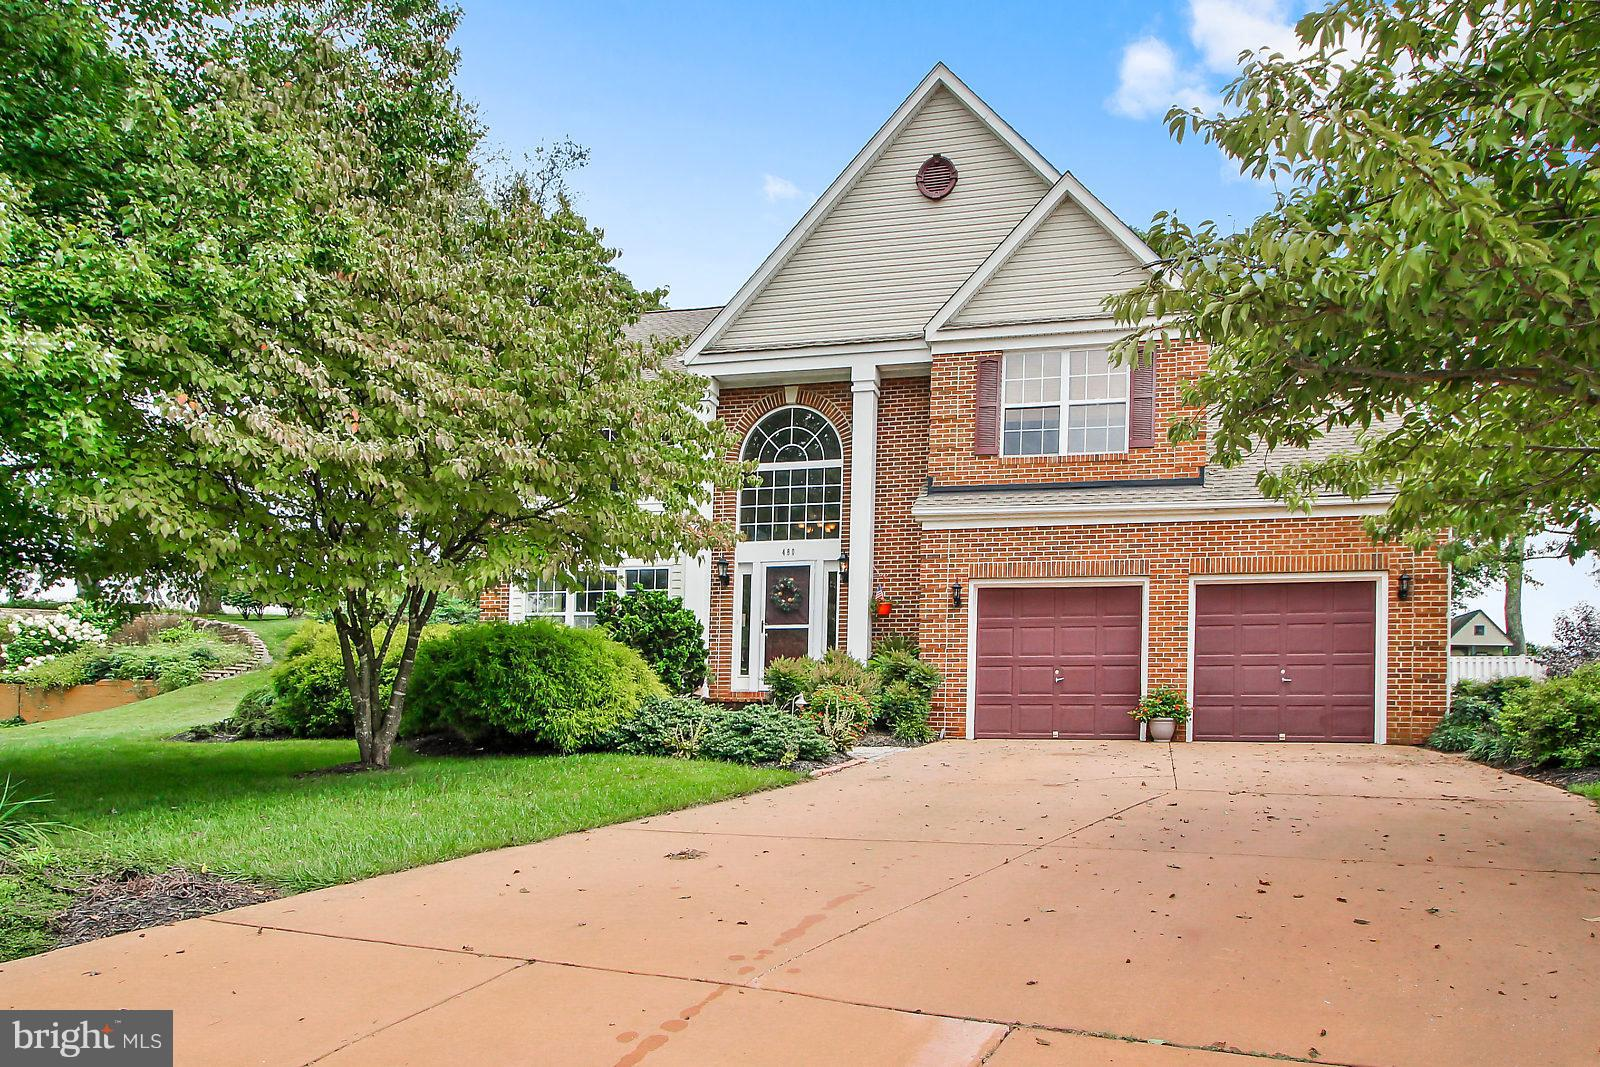 Entertainers delight. 4 bedroom 3.5 bath, family room off kitchen with fire place. Private backyard